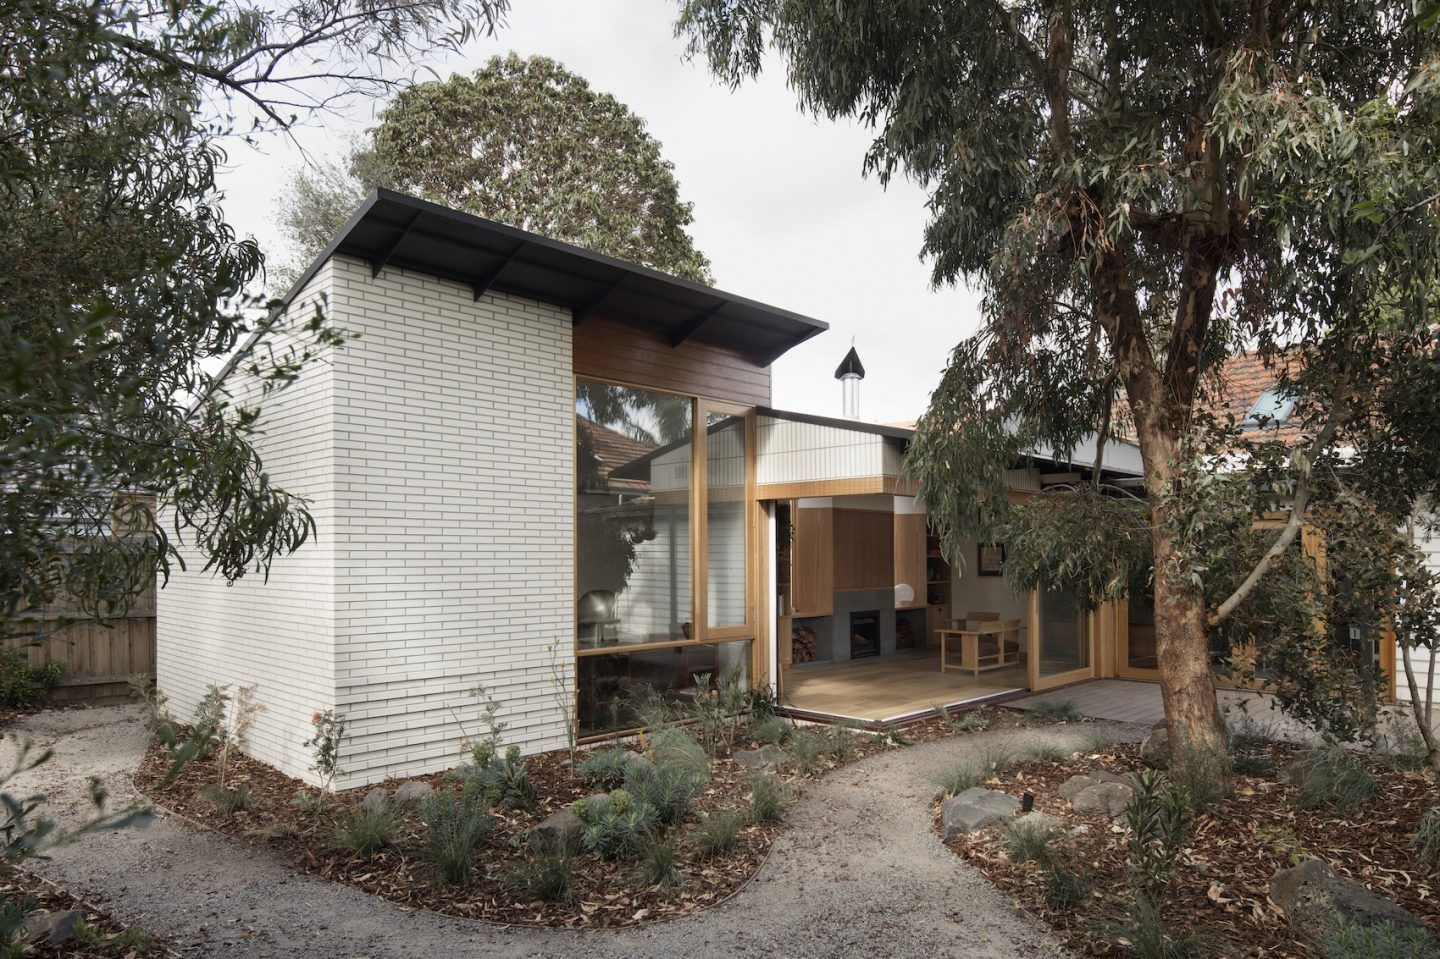 IGNANT-Architecture-Winwood-Mckenzie-Architecture-Brunswick-House-9